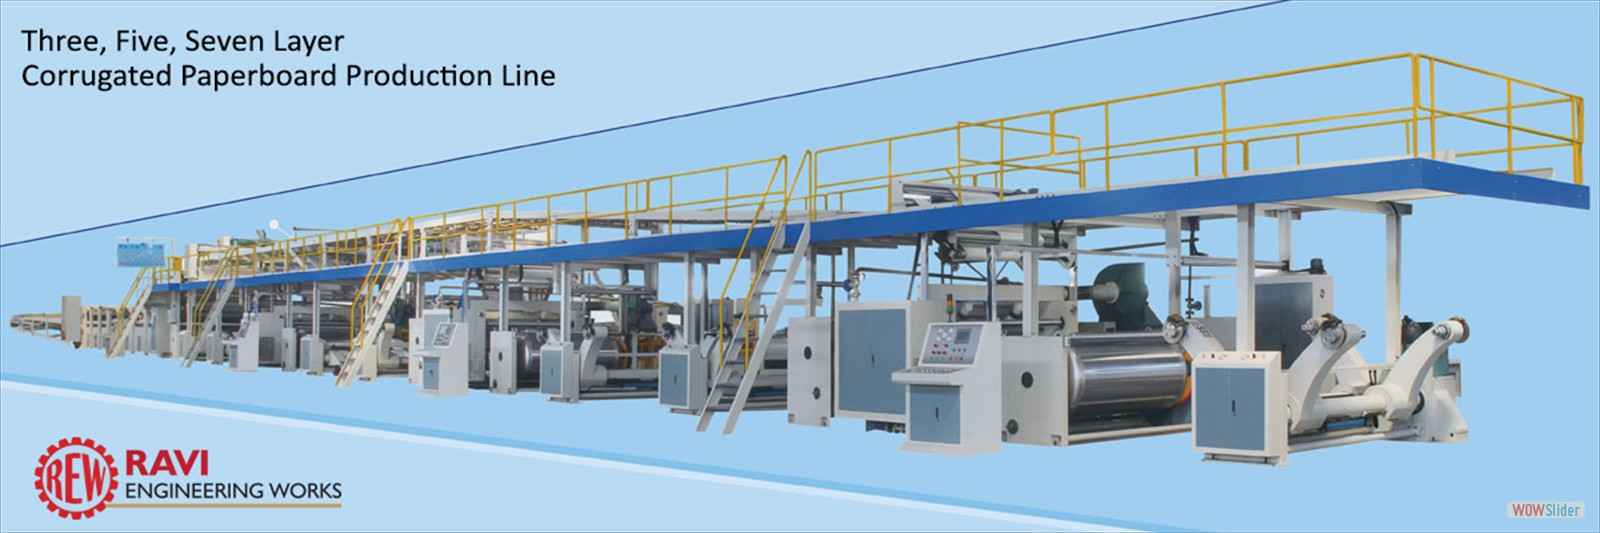 Three, Five, Seven Layer Corrugated Paperboard Production Line